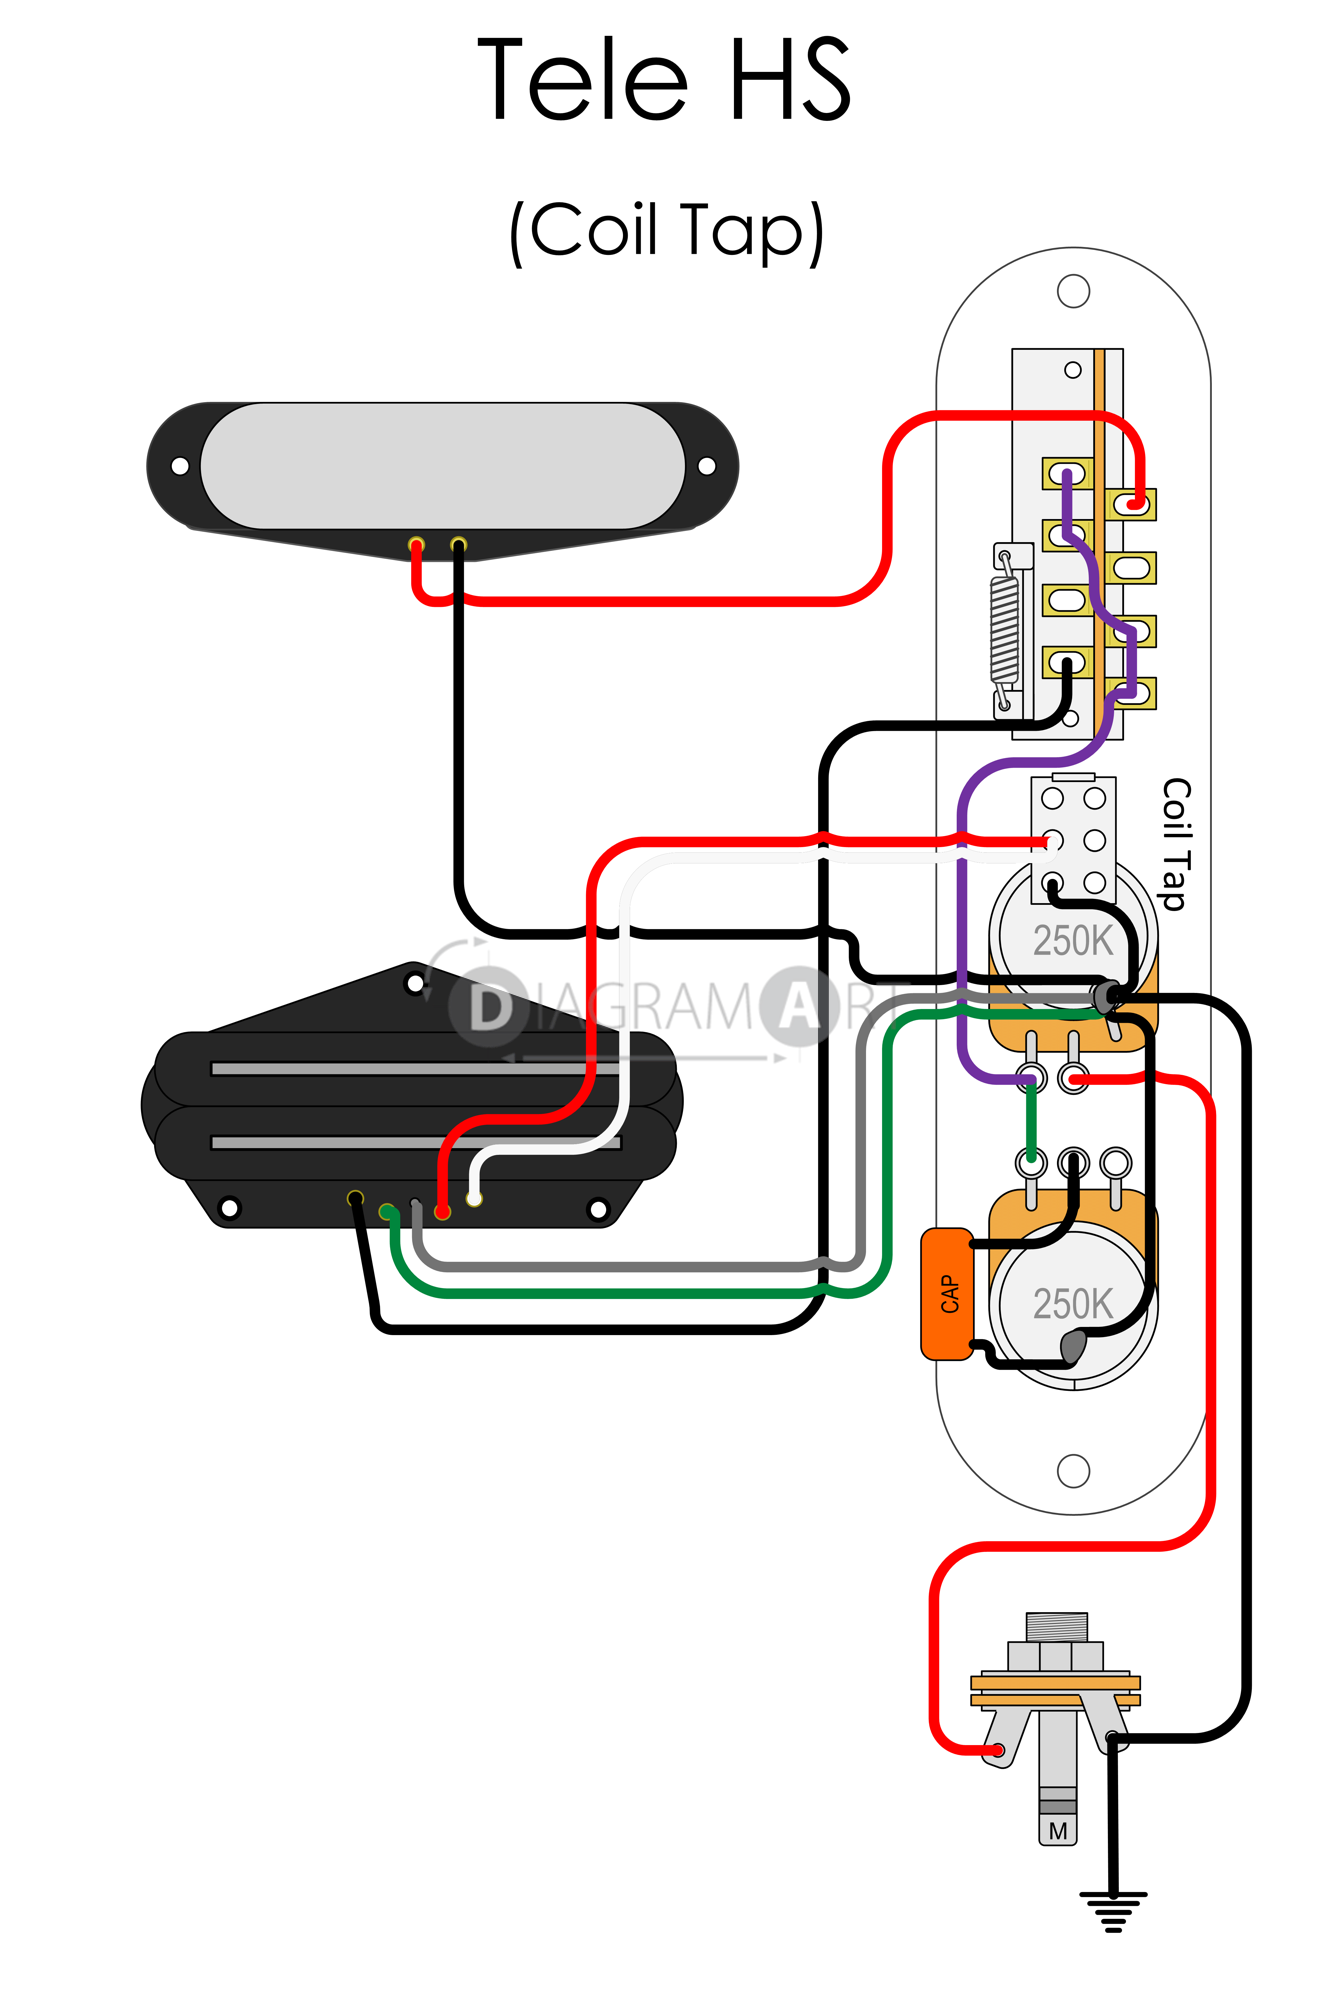 Coil Tap Diagram Detailed Schematics Split Wiring Electric Guitar Tele Hs Circuit Single Humbucker